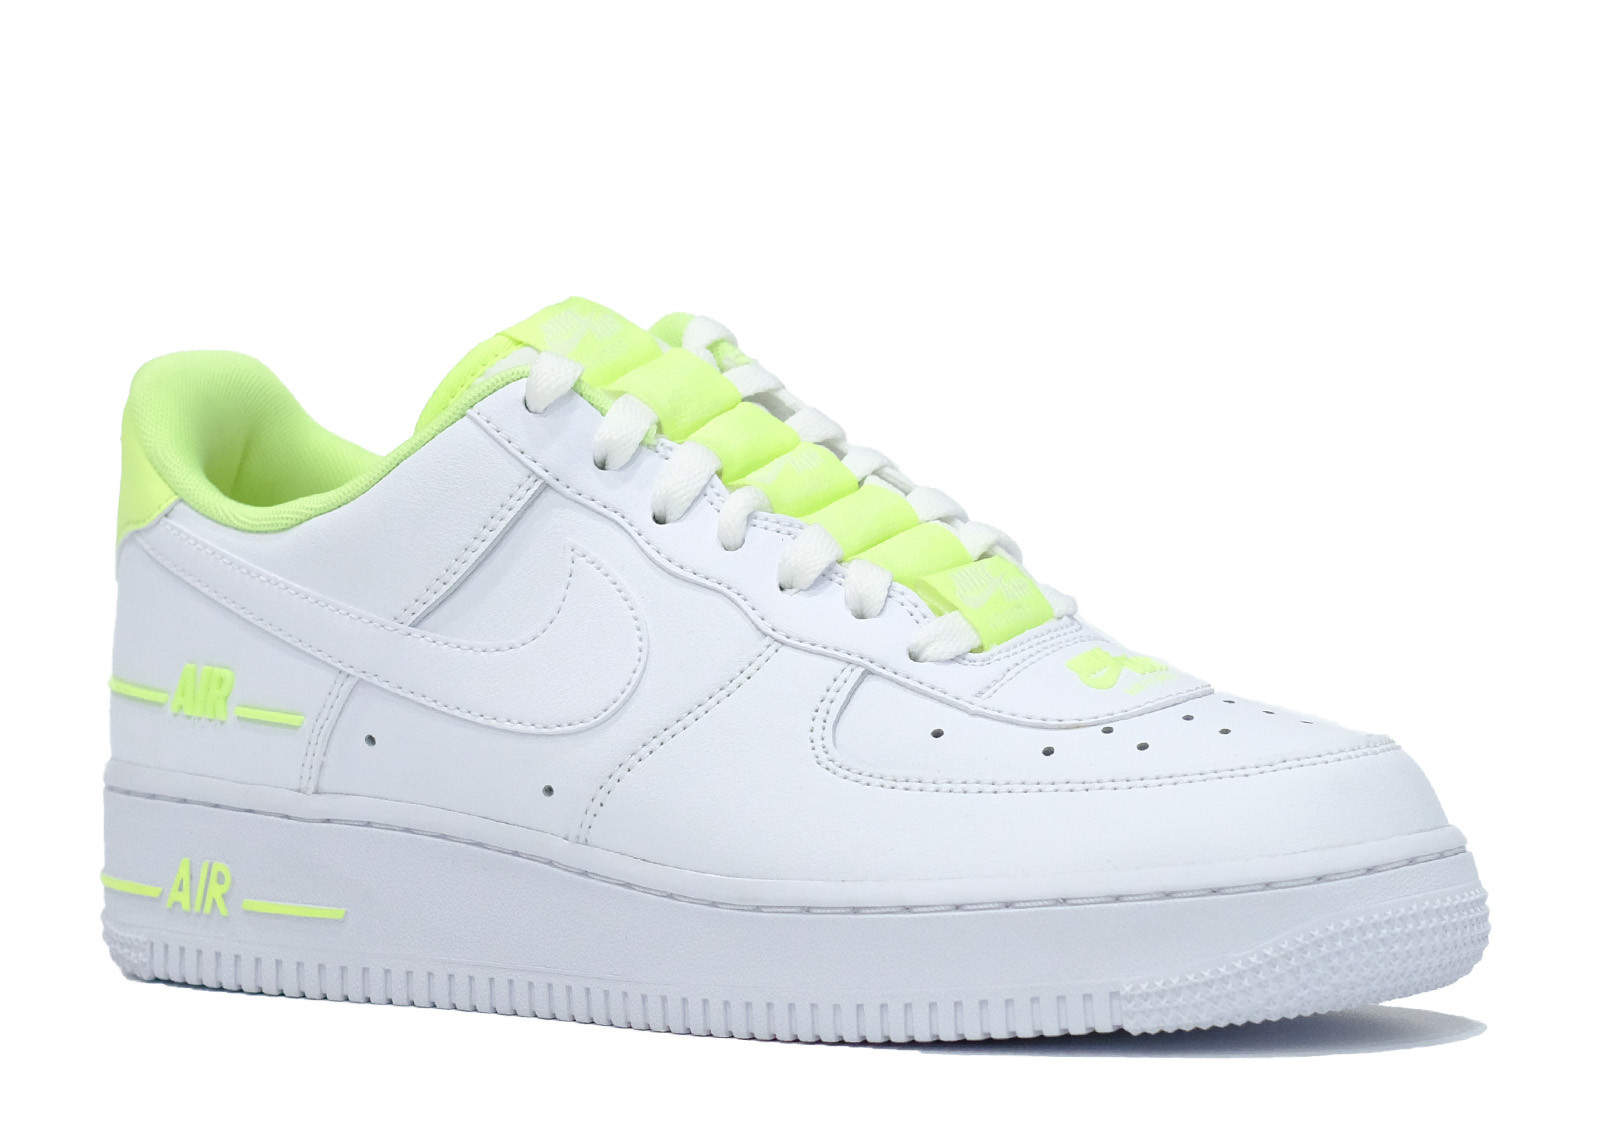 AIR FORCE 1 LOW DOUBLE AIR WHITE BARELY VOLT image 2